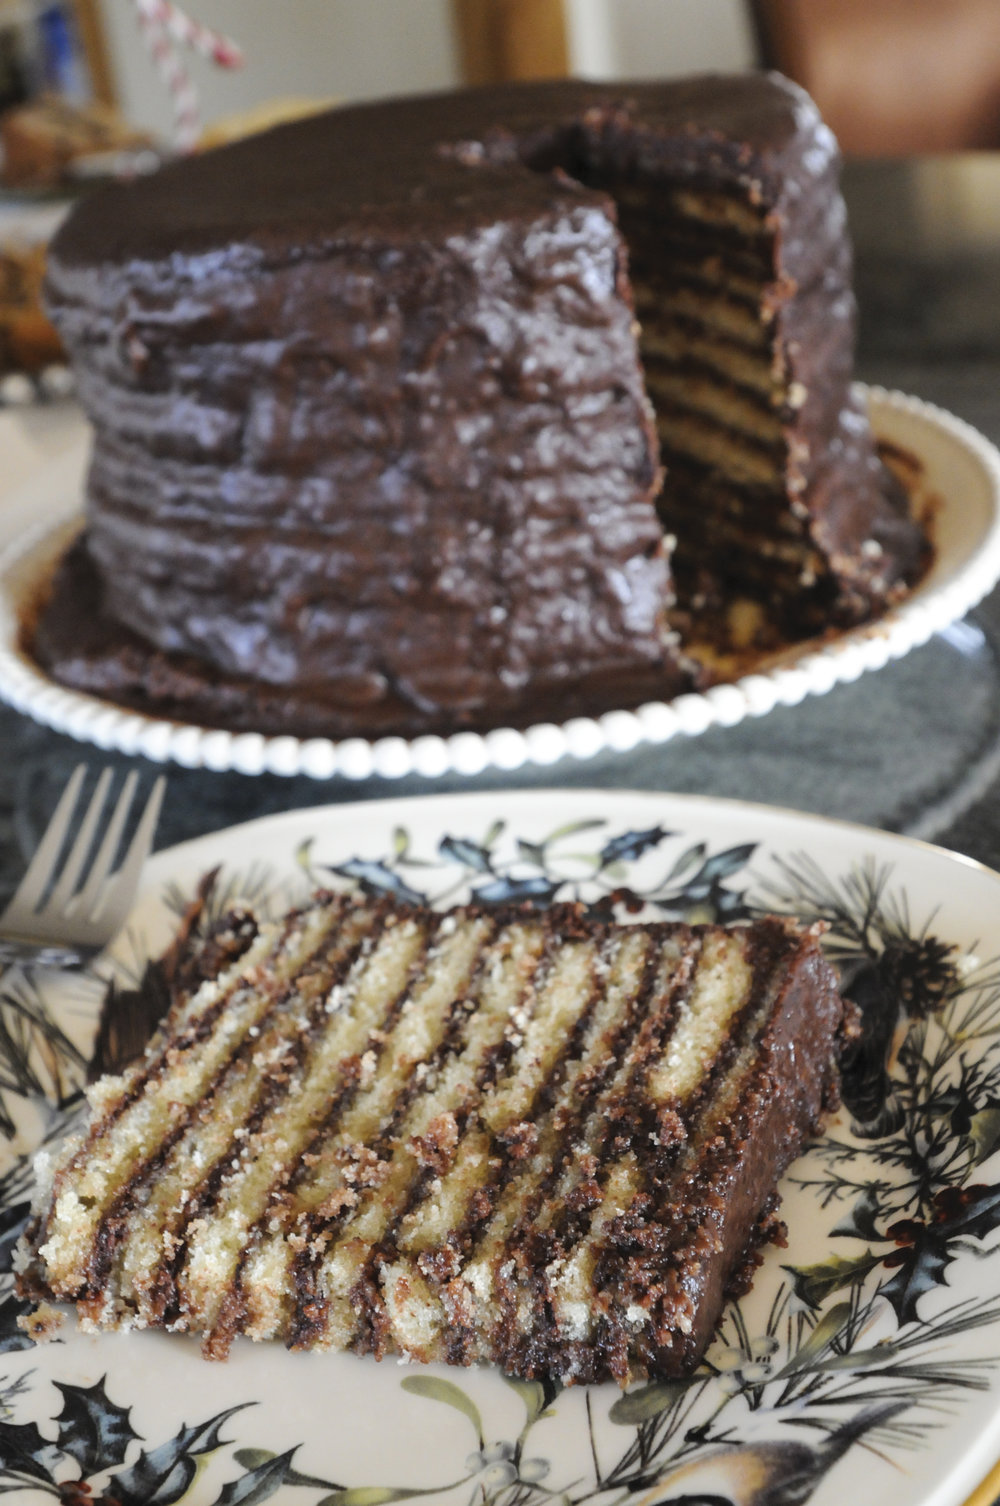 14-Layer Chocolate Cake